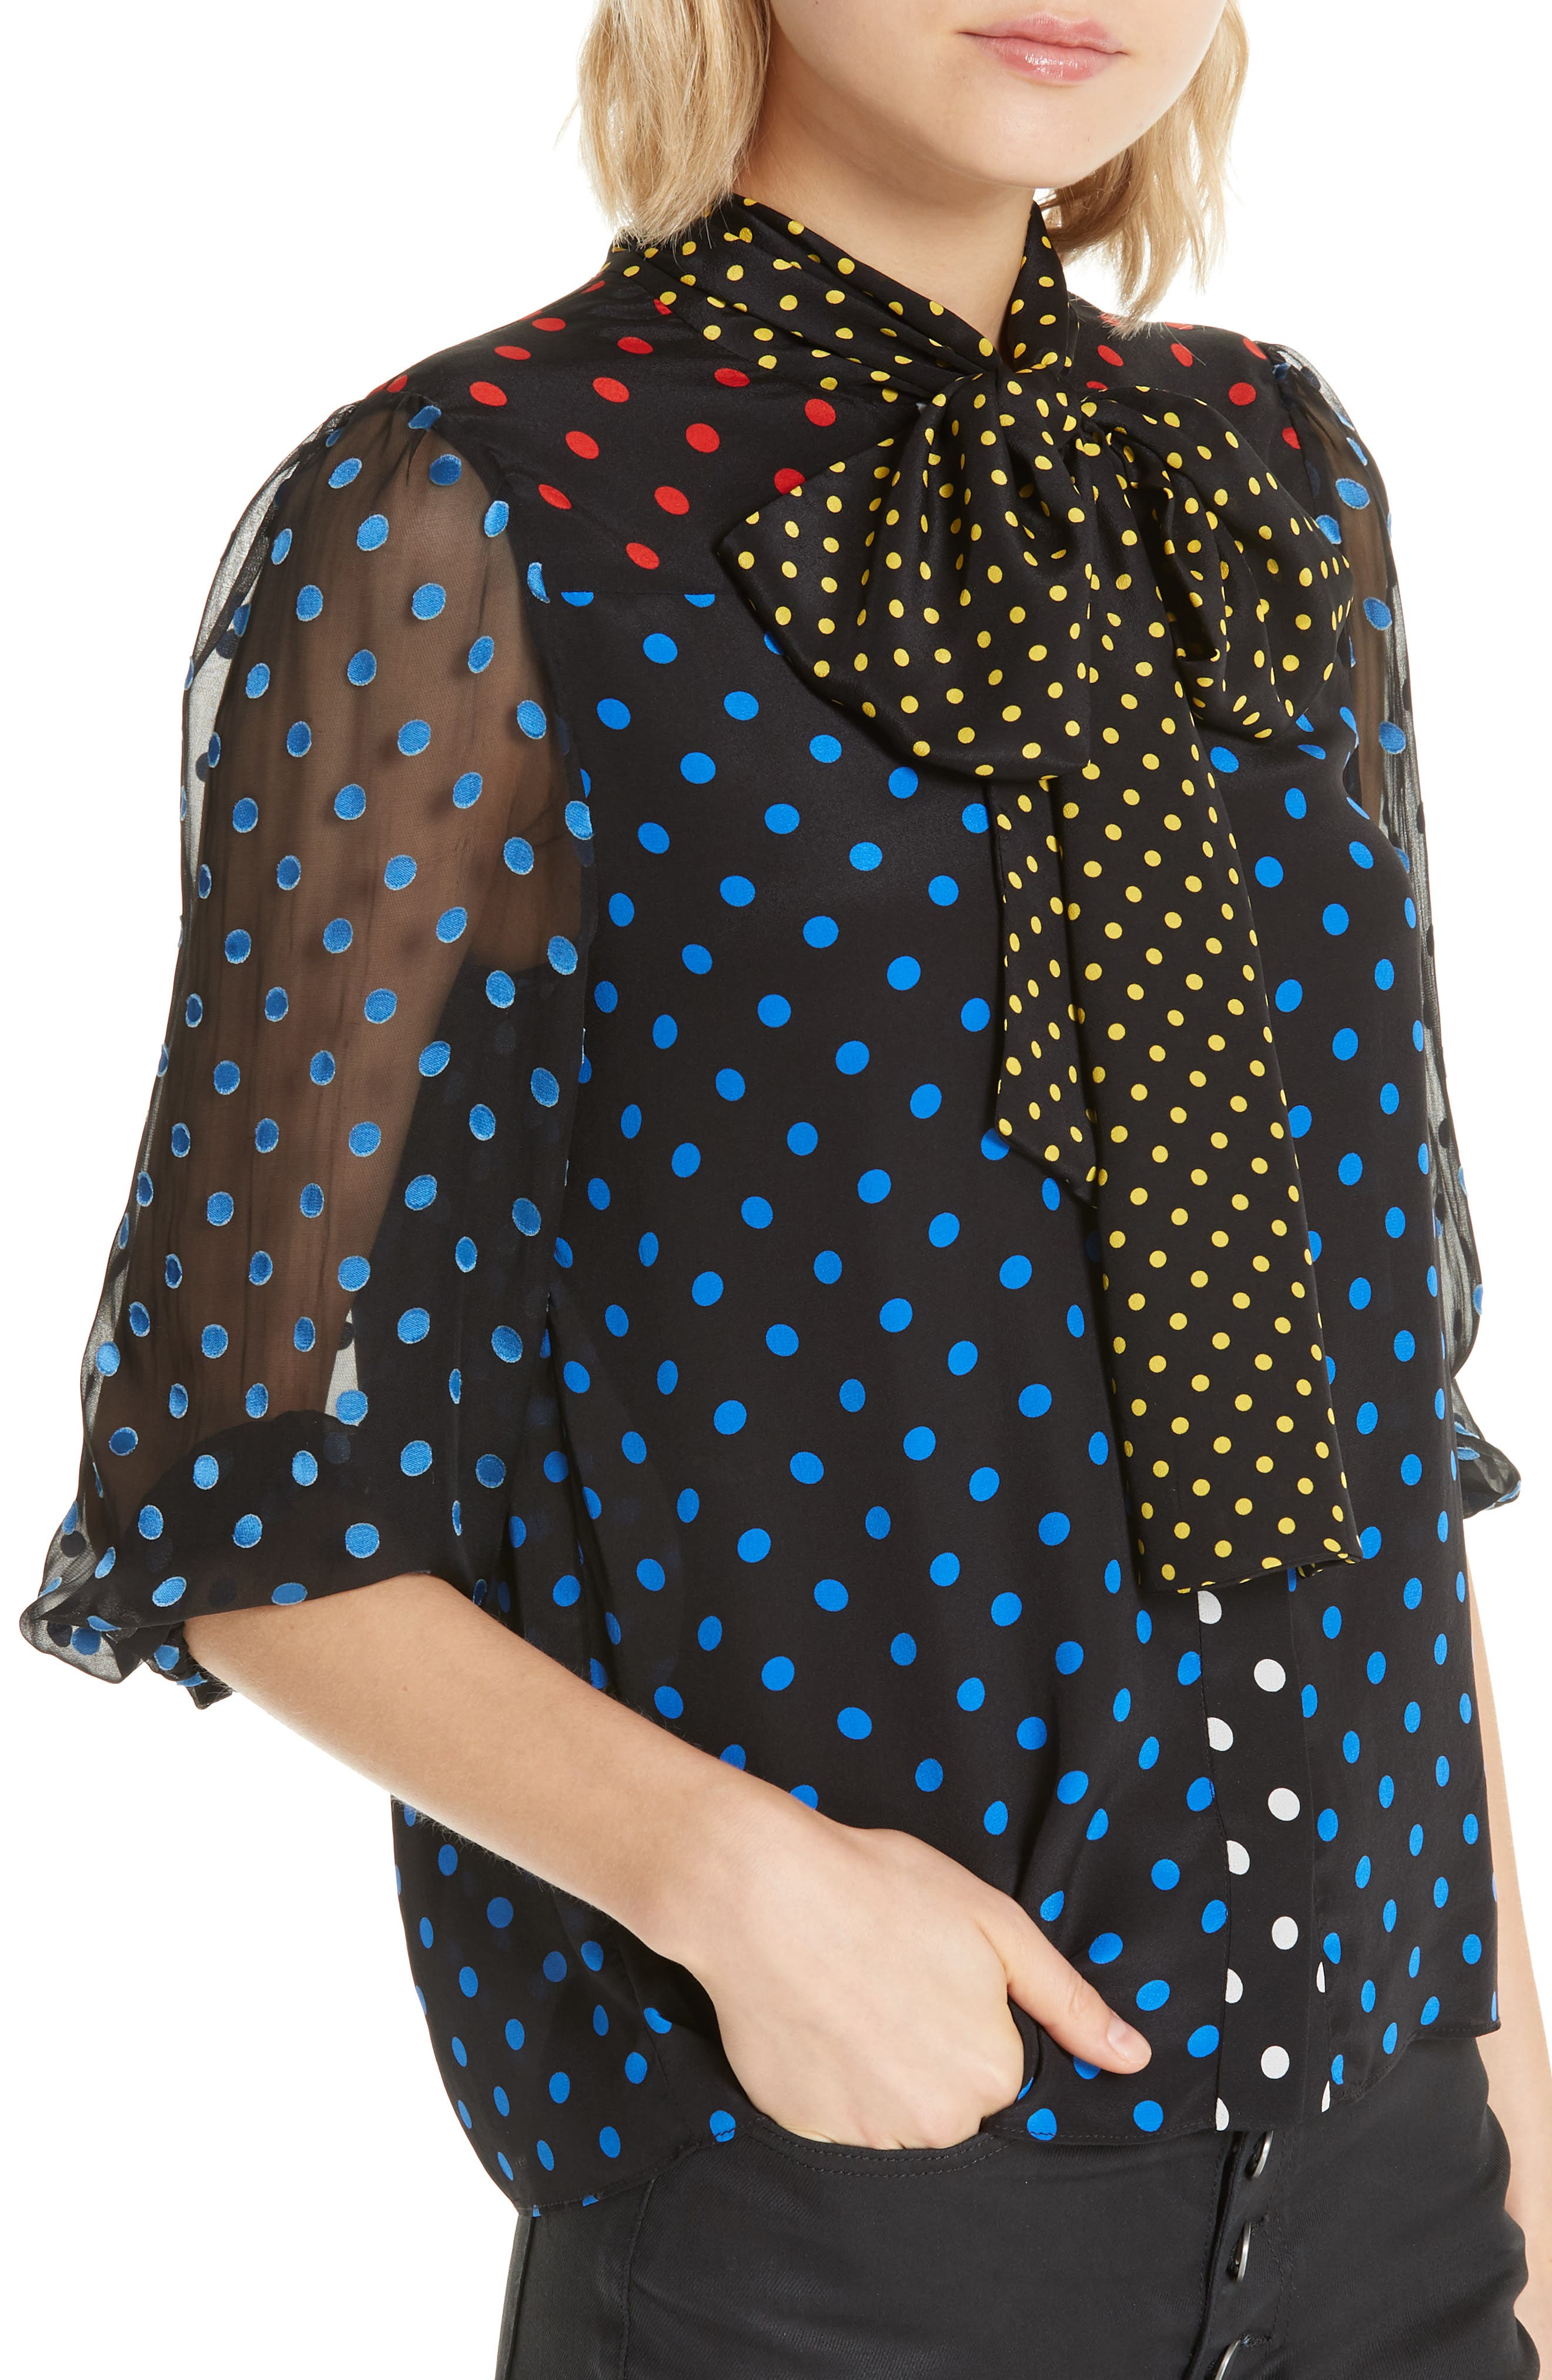 ALICE + OLIVIA, Jeannie Bow Neck Blouse, Alternate thumbnail 4, color, 001